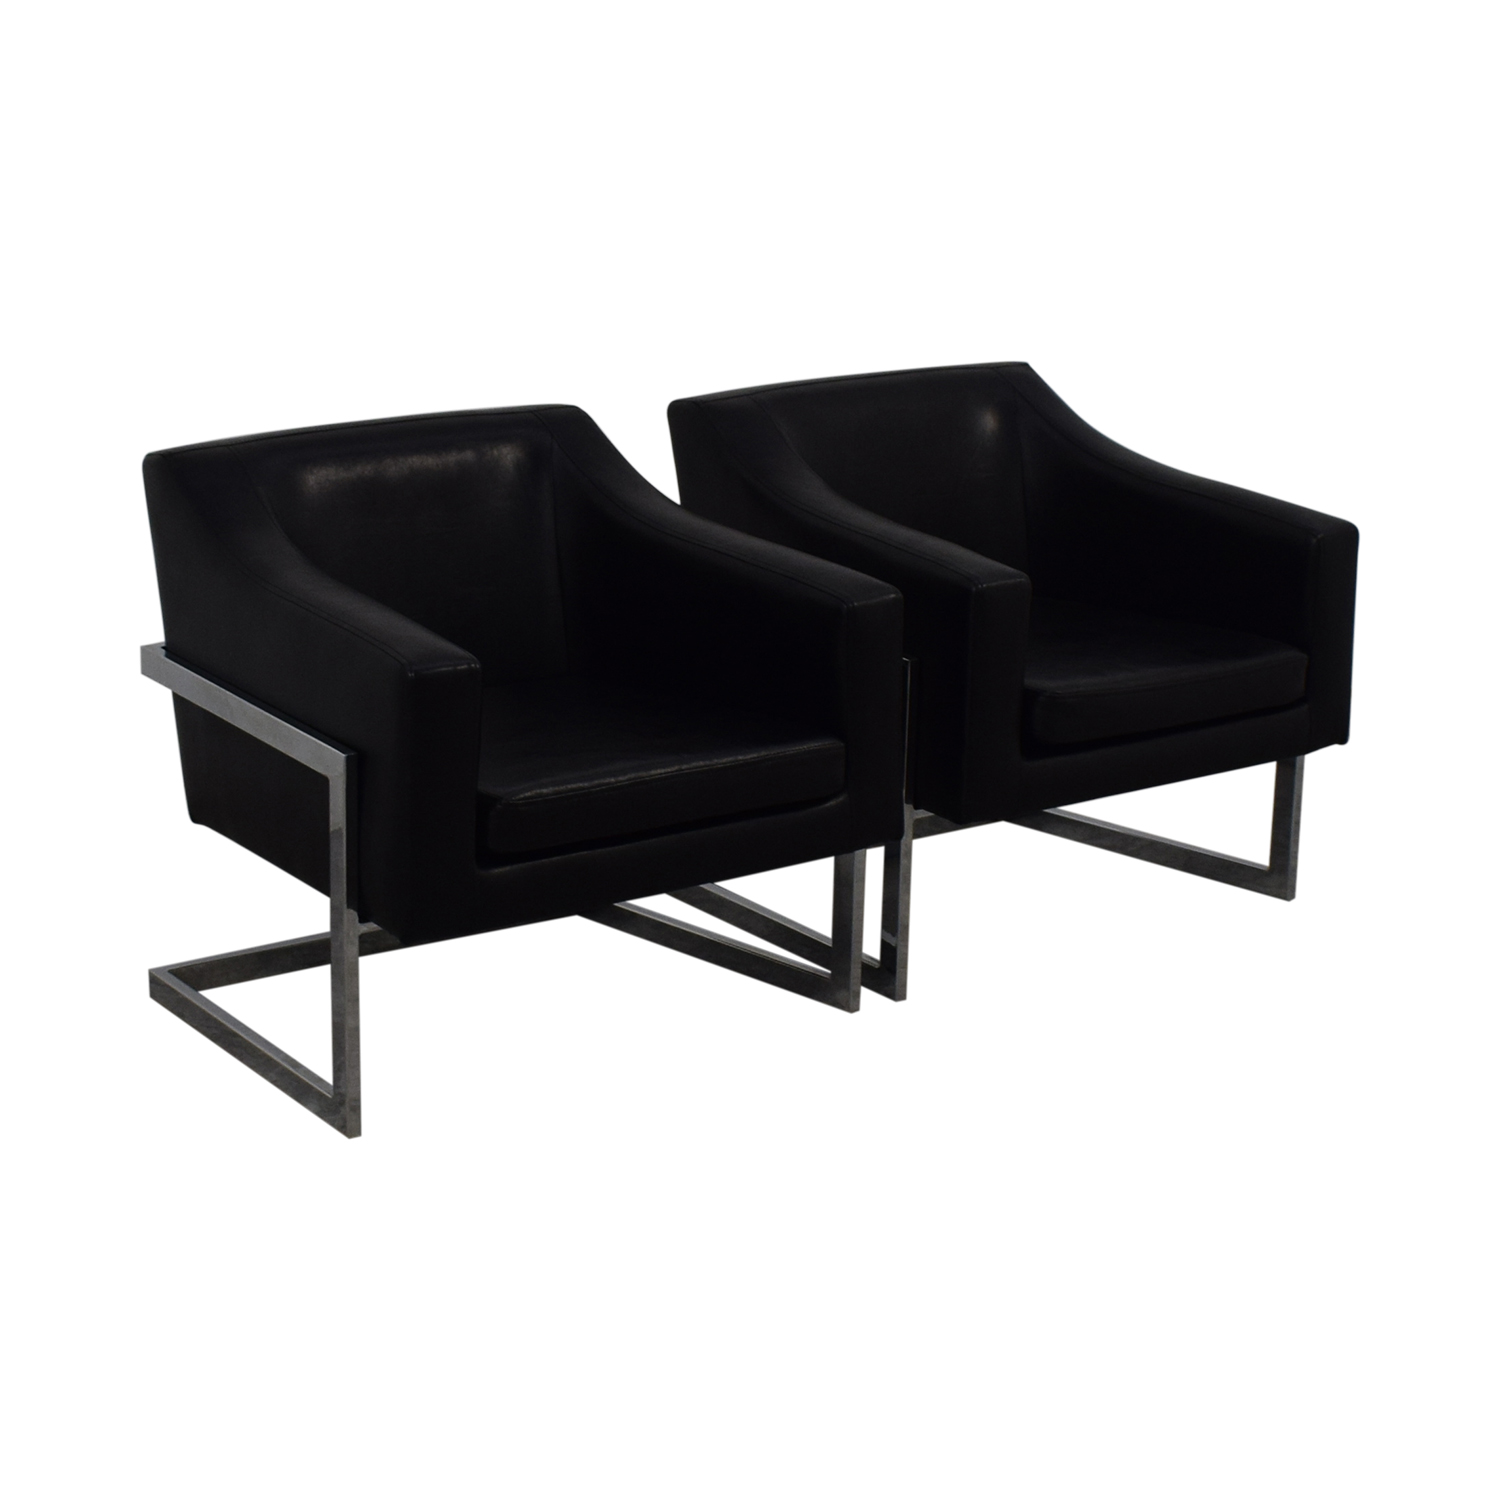 Coaster Fine Furniture Coaster Fine Furniture Black Accent Chairs nyc